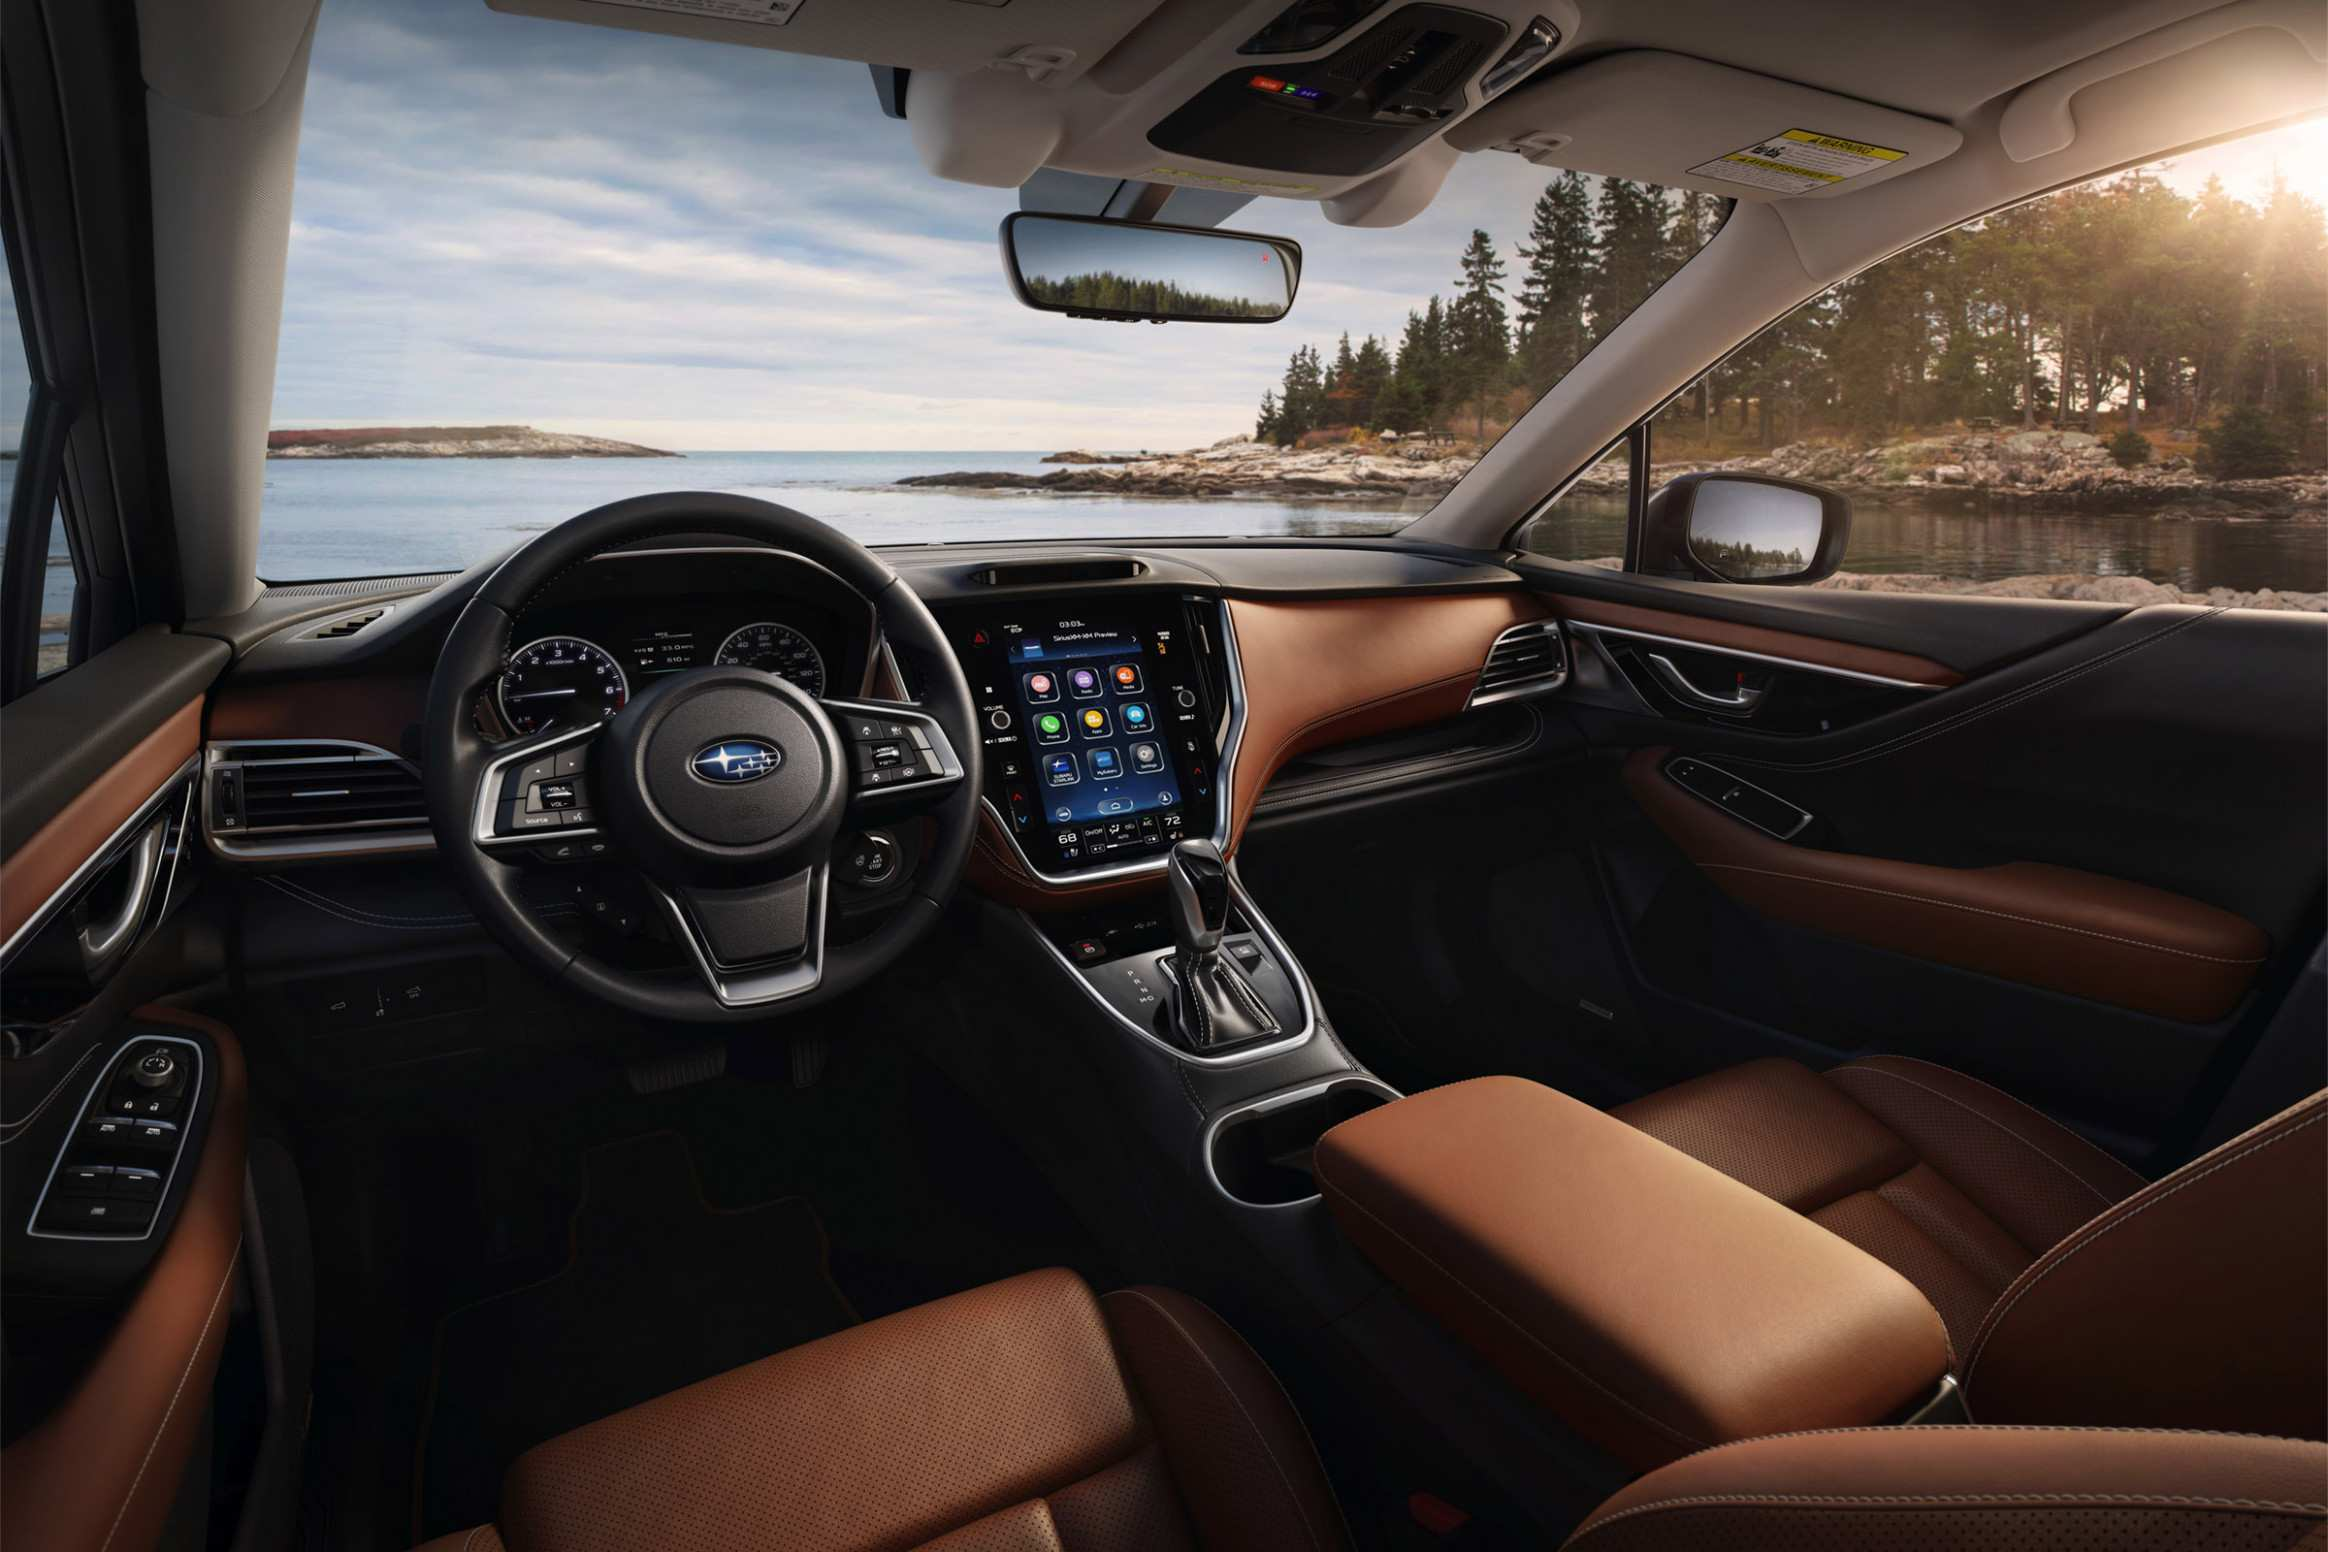 49 The Best Subaru Legacy 2020 Interior Exterior